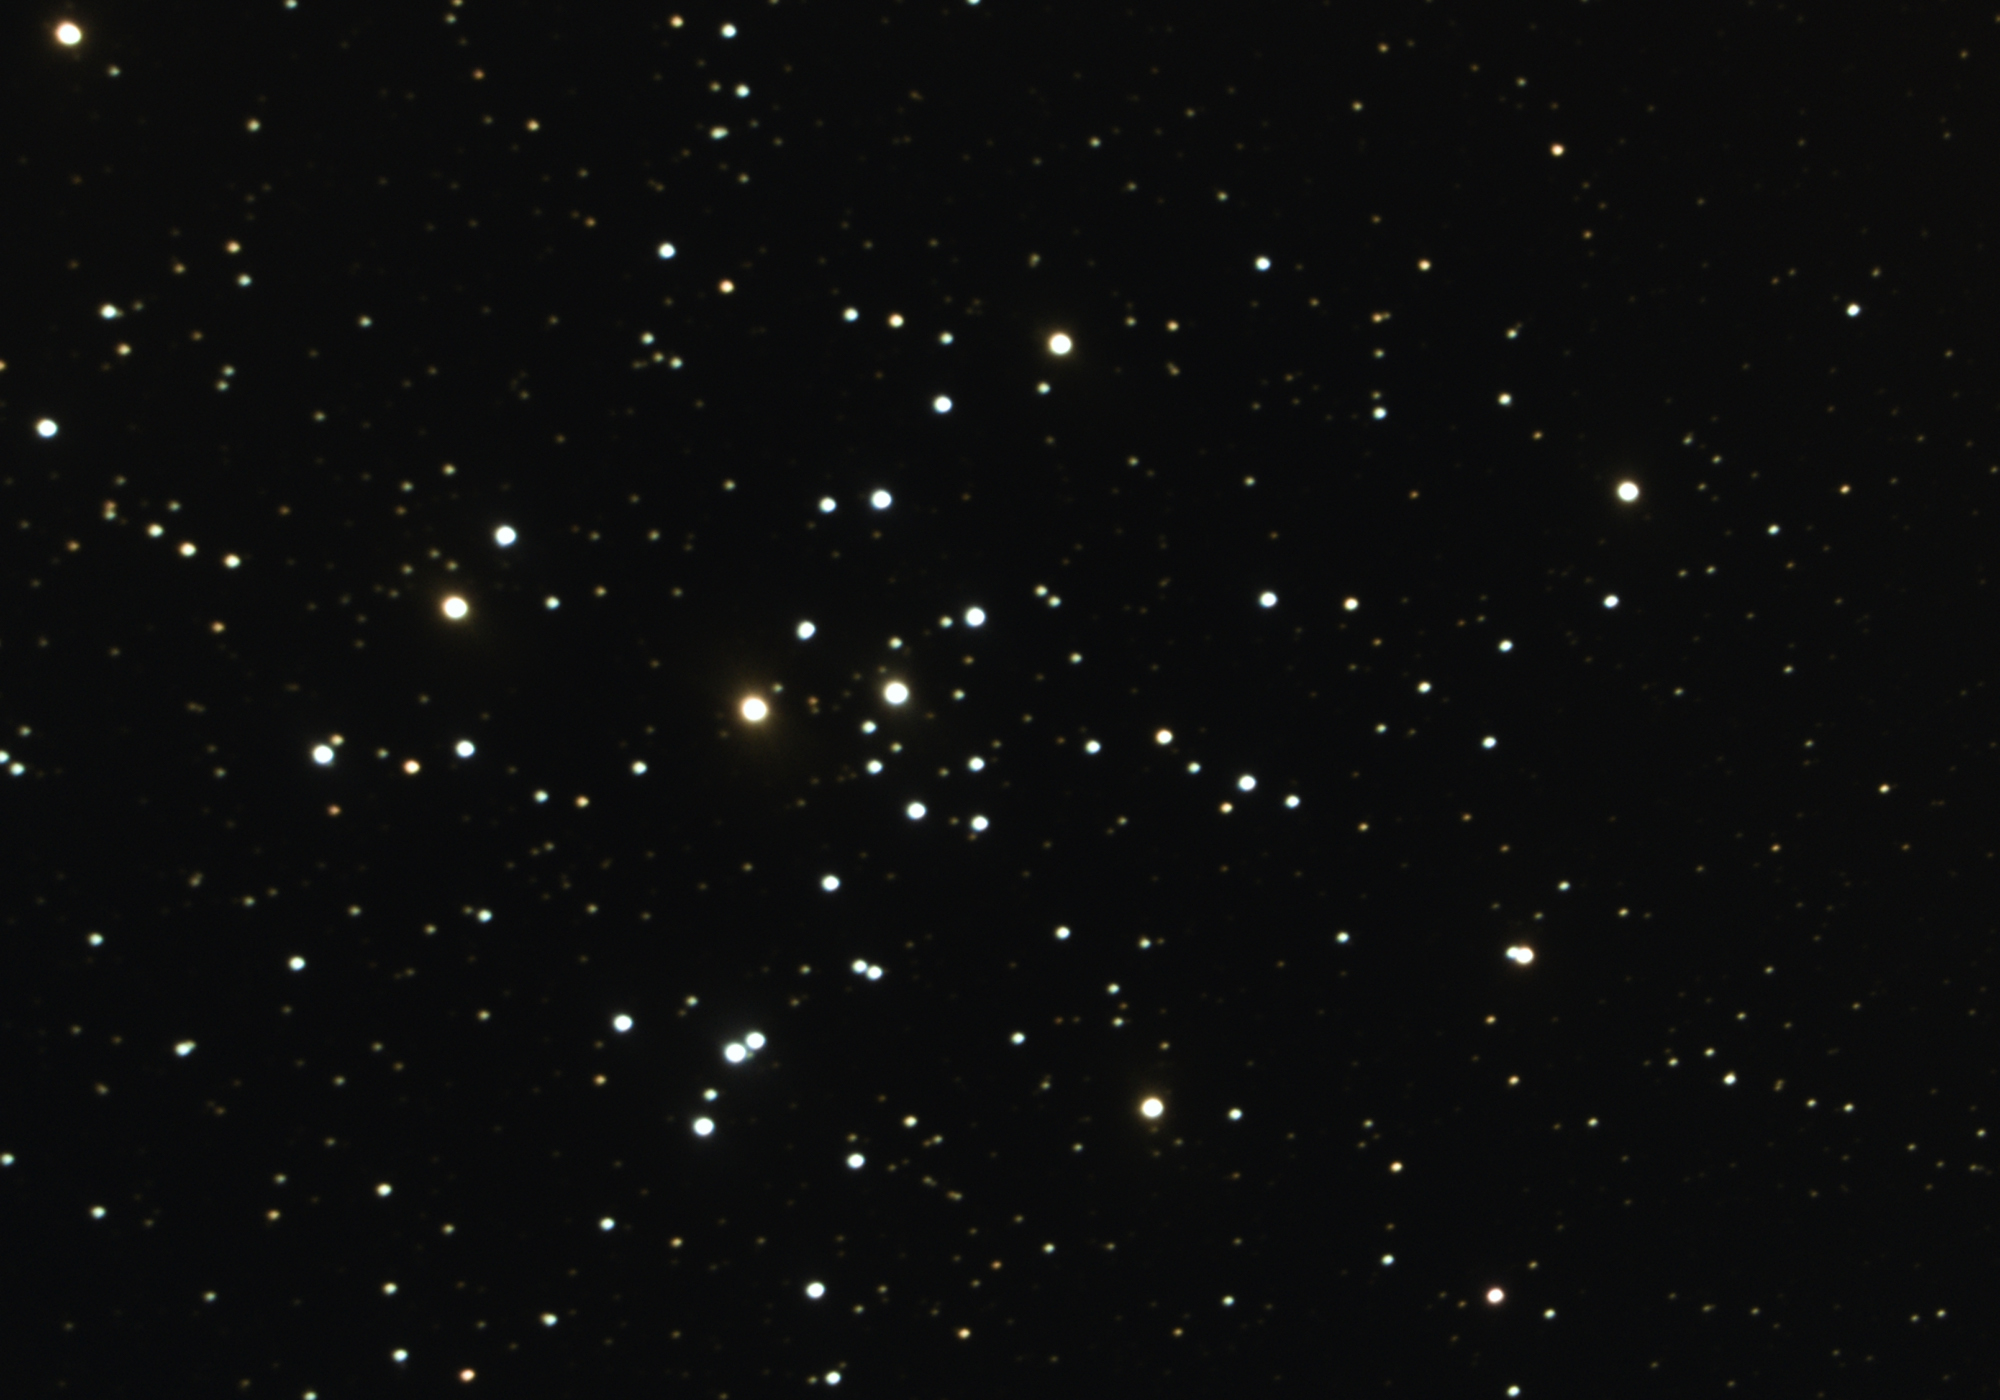 Open Star Cluster Messier 41